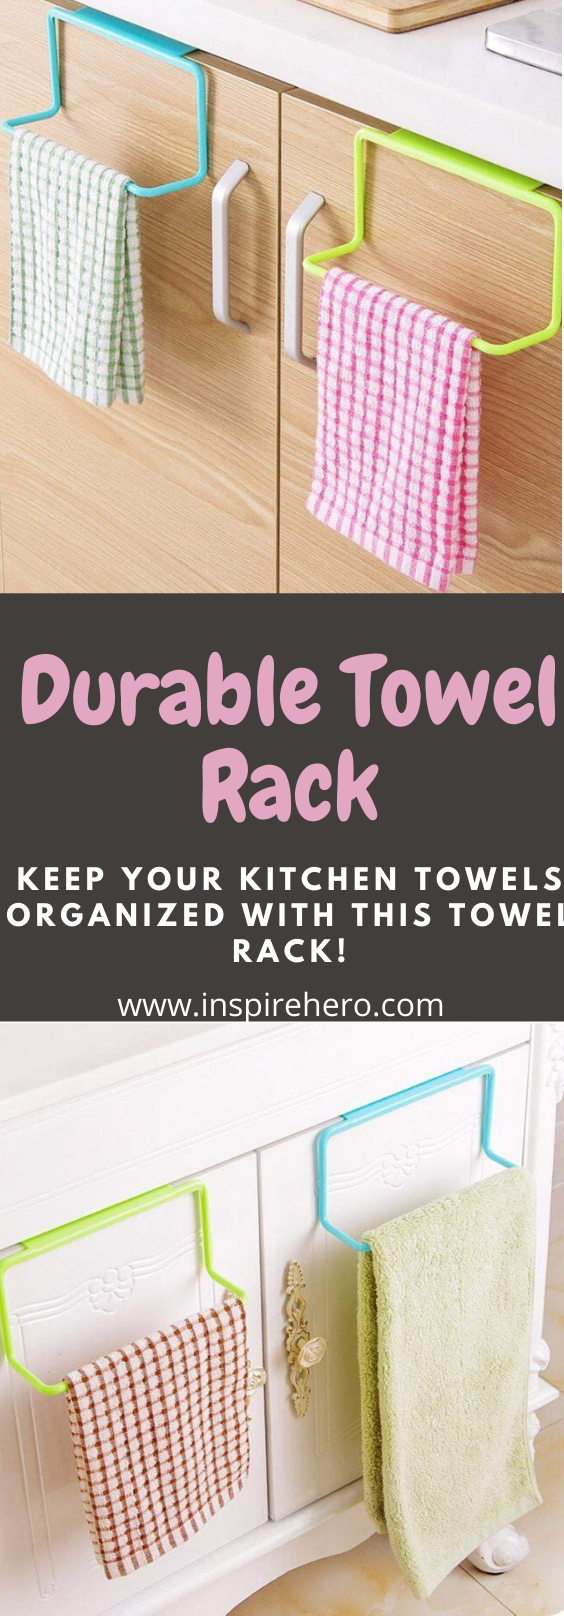 High-quality towel rack organizer that is installed casually with no tool required and removed easily with no damage to the cupboard door surface. Never be limited by space forever. What spot will you put it in? #kitchenorganization #kitchenorganizationideas #kitchenorganizationcaibnet  #kitchenorganizer